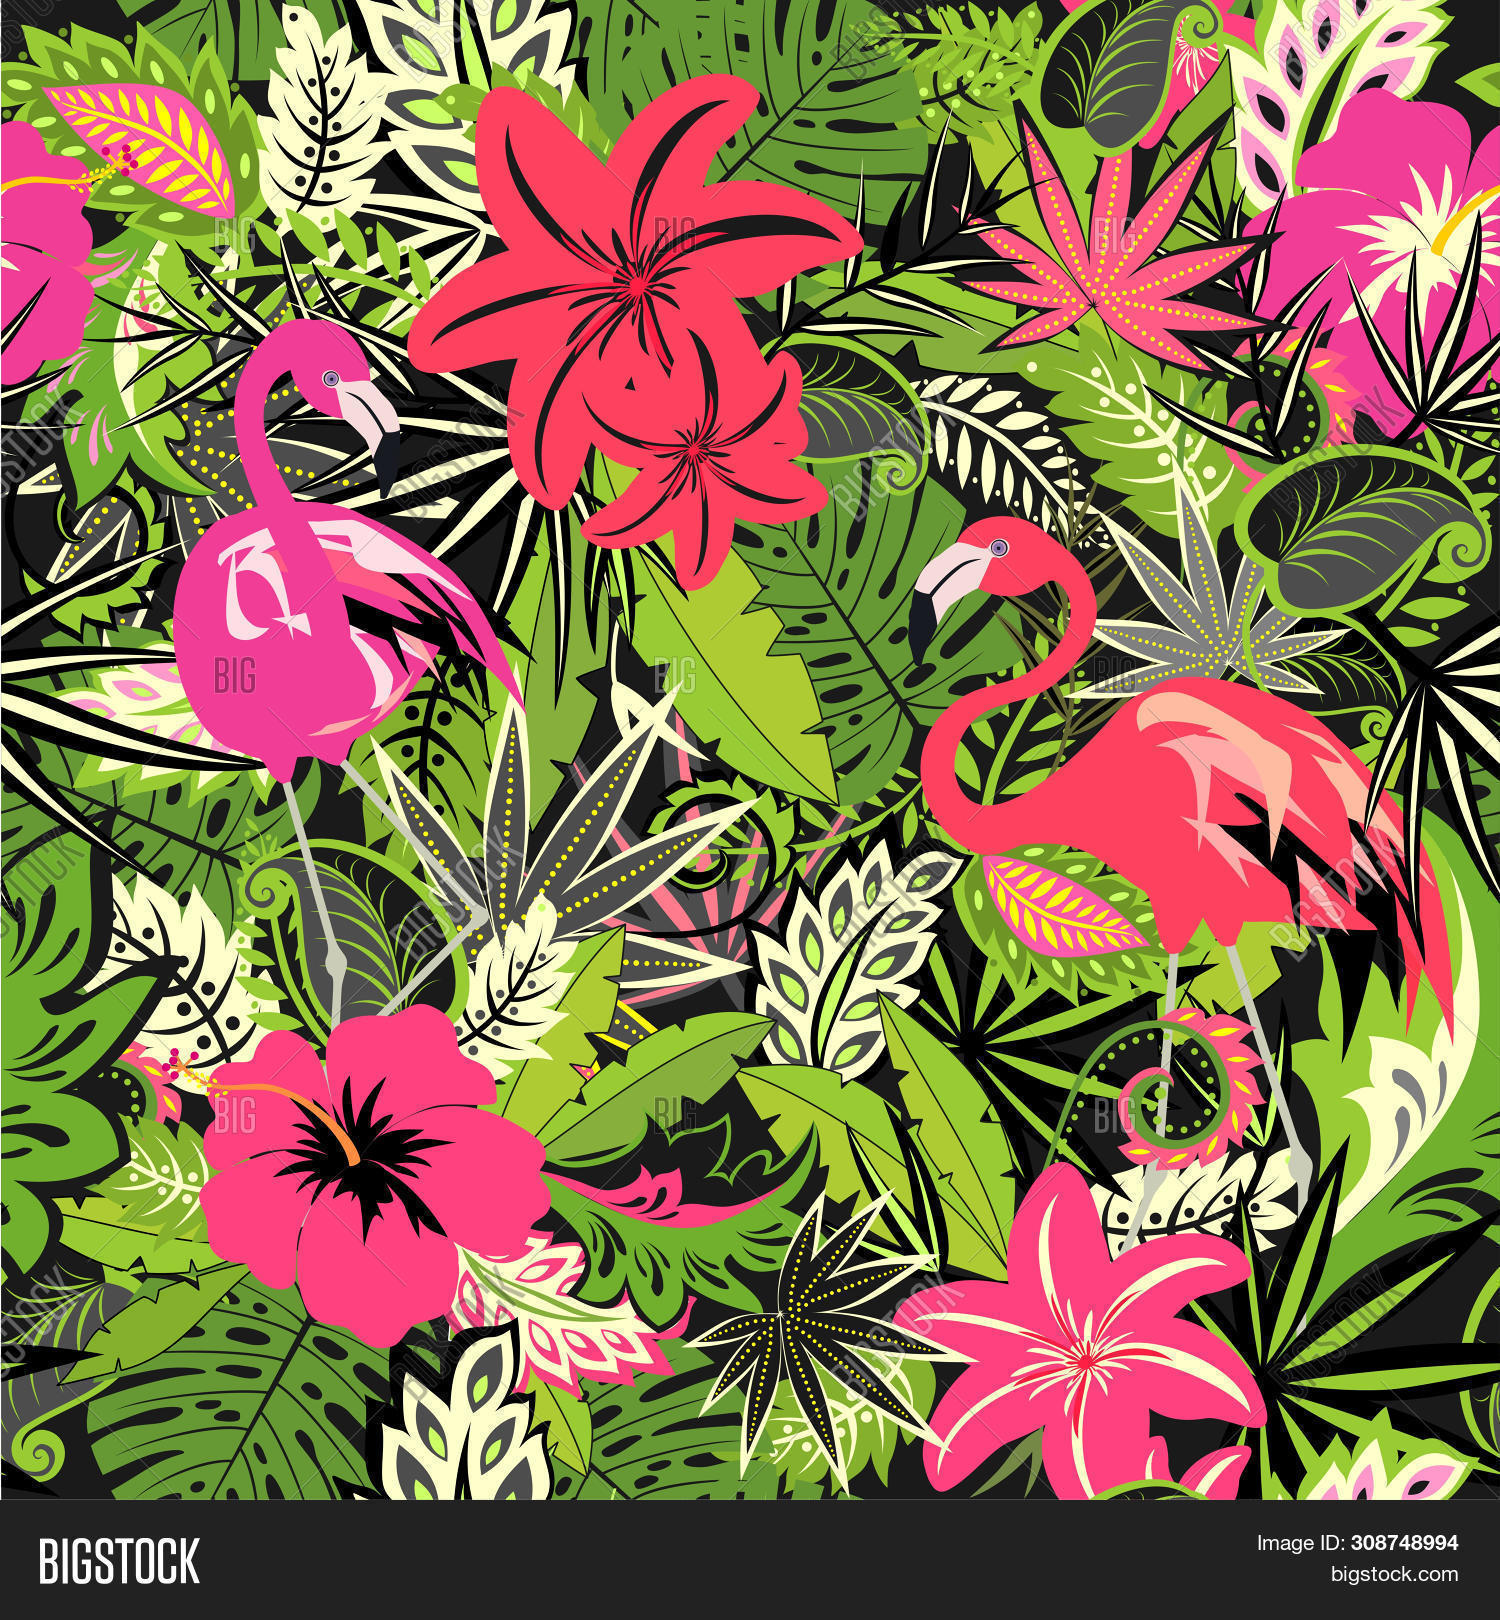 Tropical Wallpaper Image Photo Free Trial Bigstock